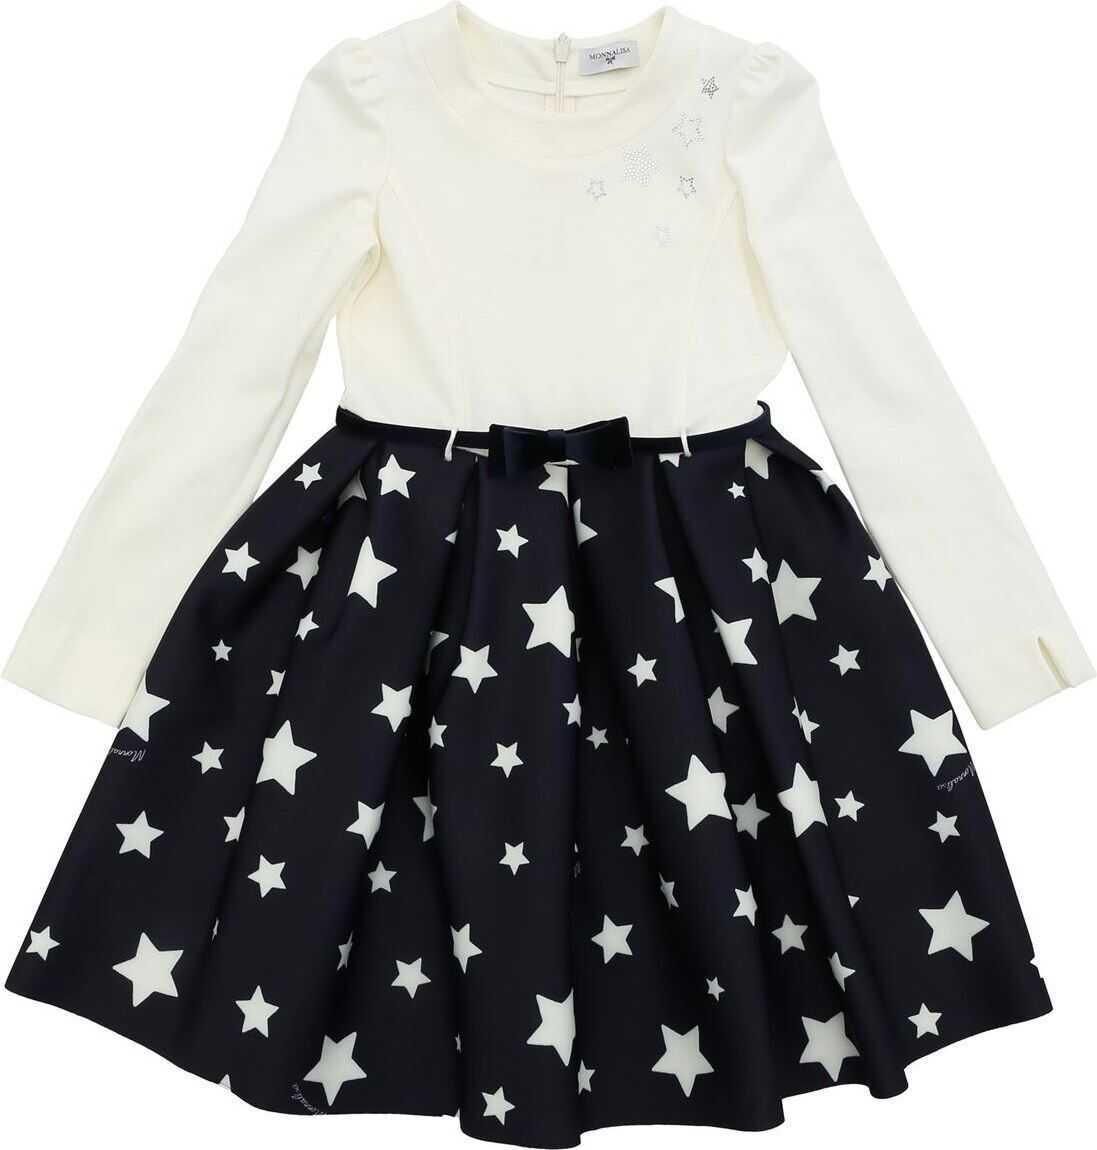 Blue And White Dress With Star Print Skirt thumbnail